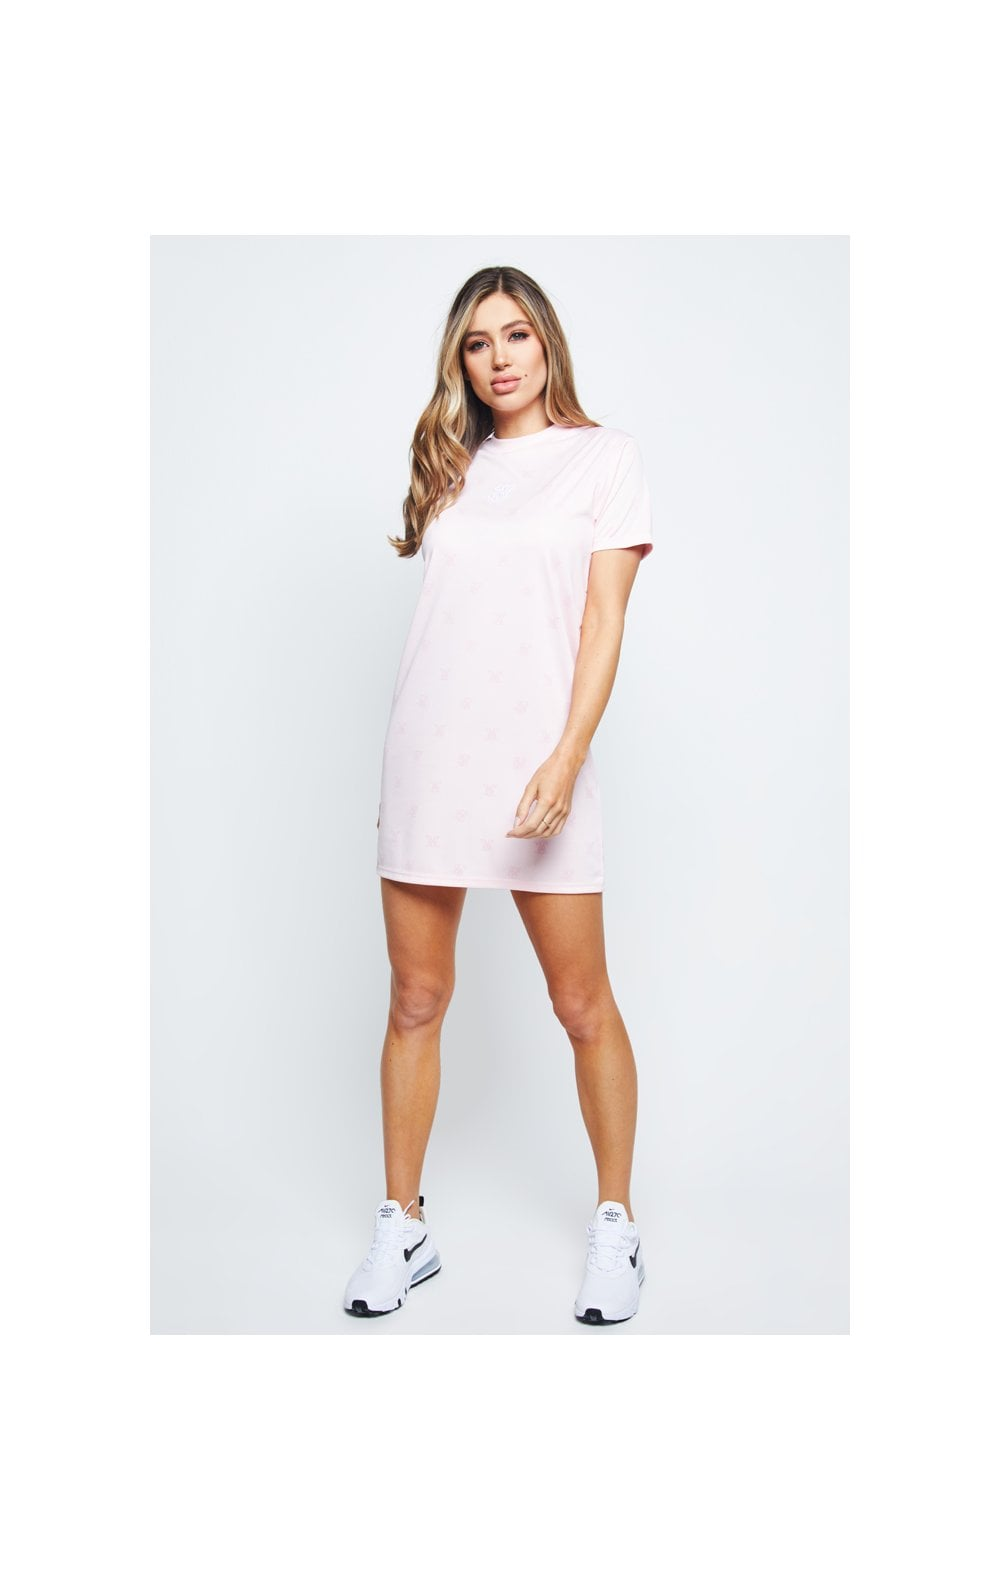 SikSilk Monogram Printed T-Shirt Dress - Pink (3)